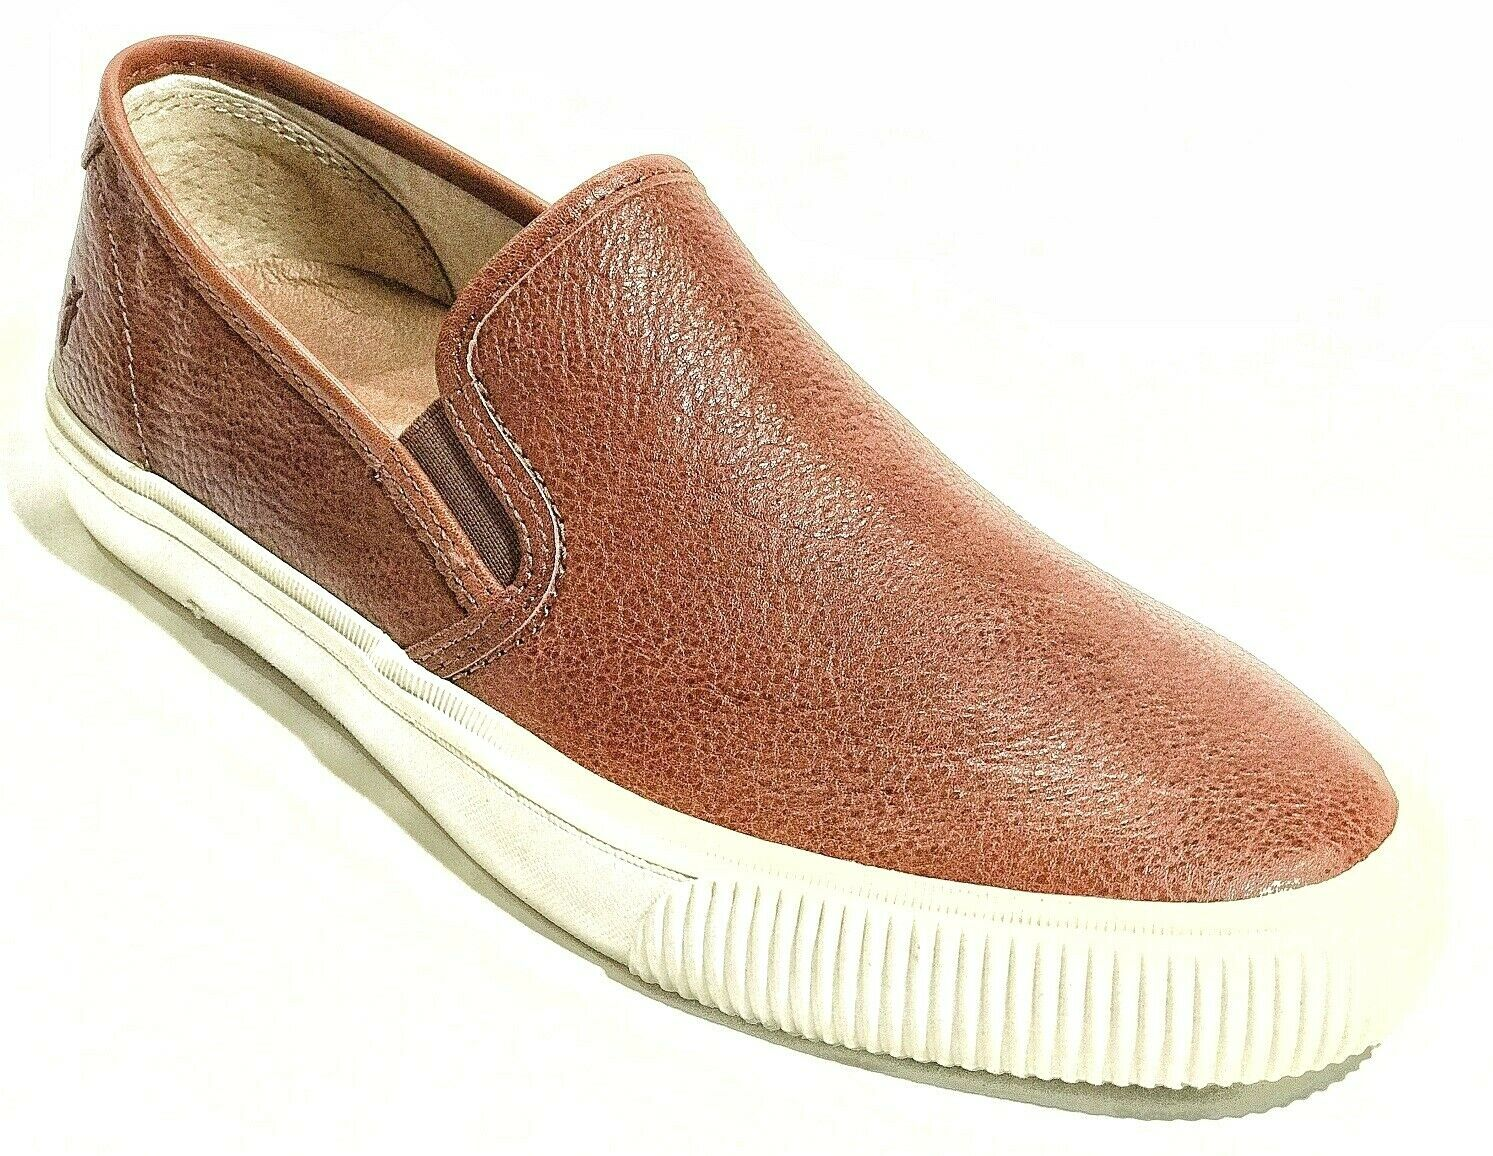 Frye Men's Patton Cognac Leather Slip On Sneakers shoes 12 NEW IN BOX